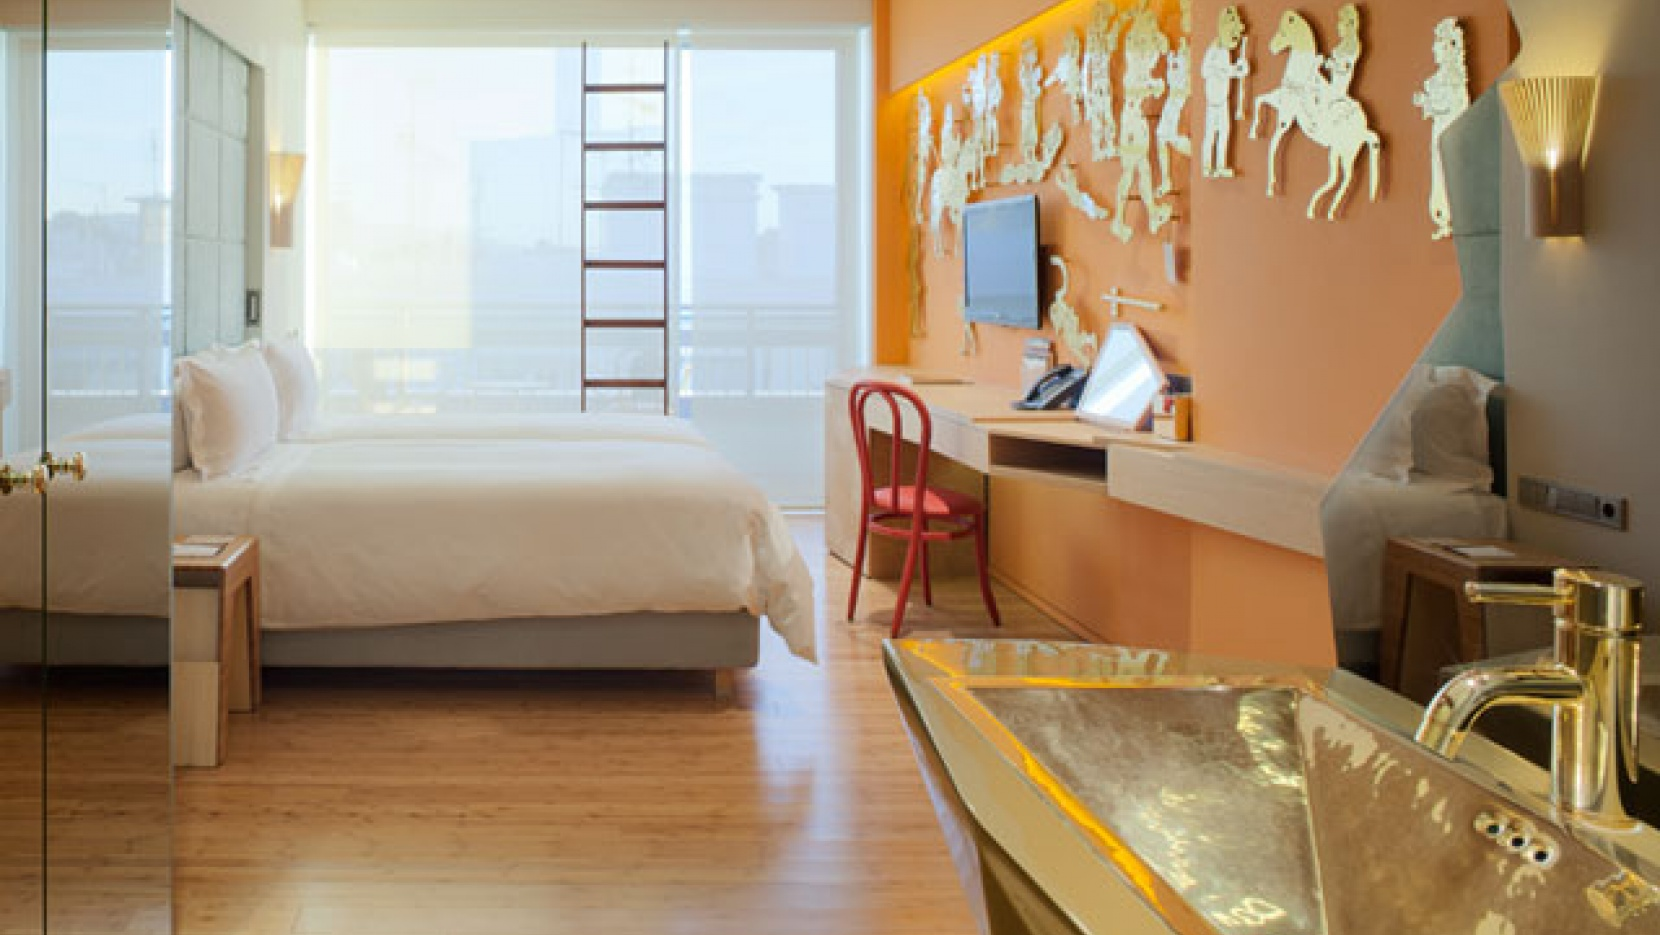 The new hotel by the campana brothers in athens greece for Design hotel athen